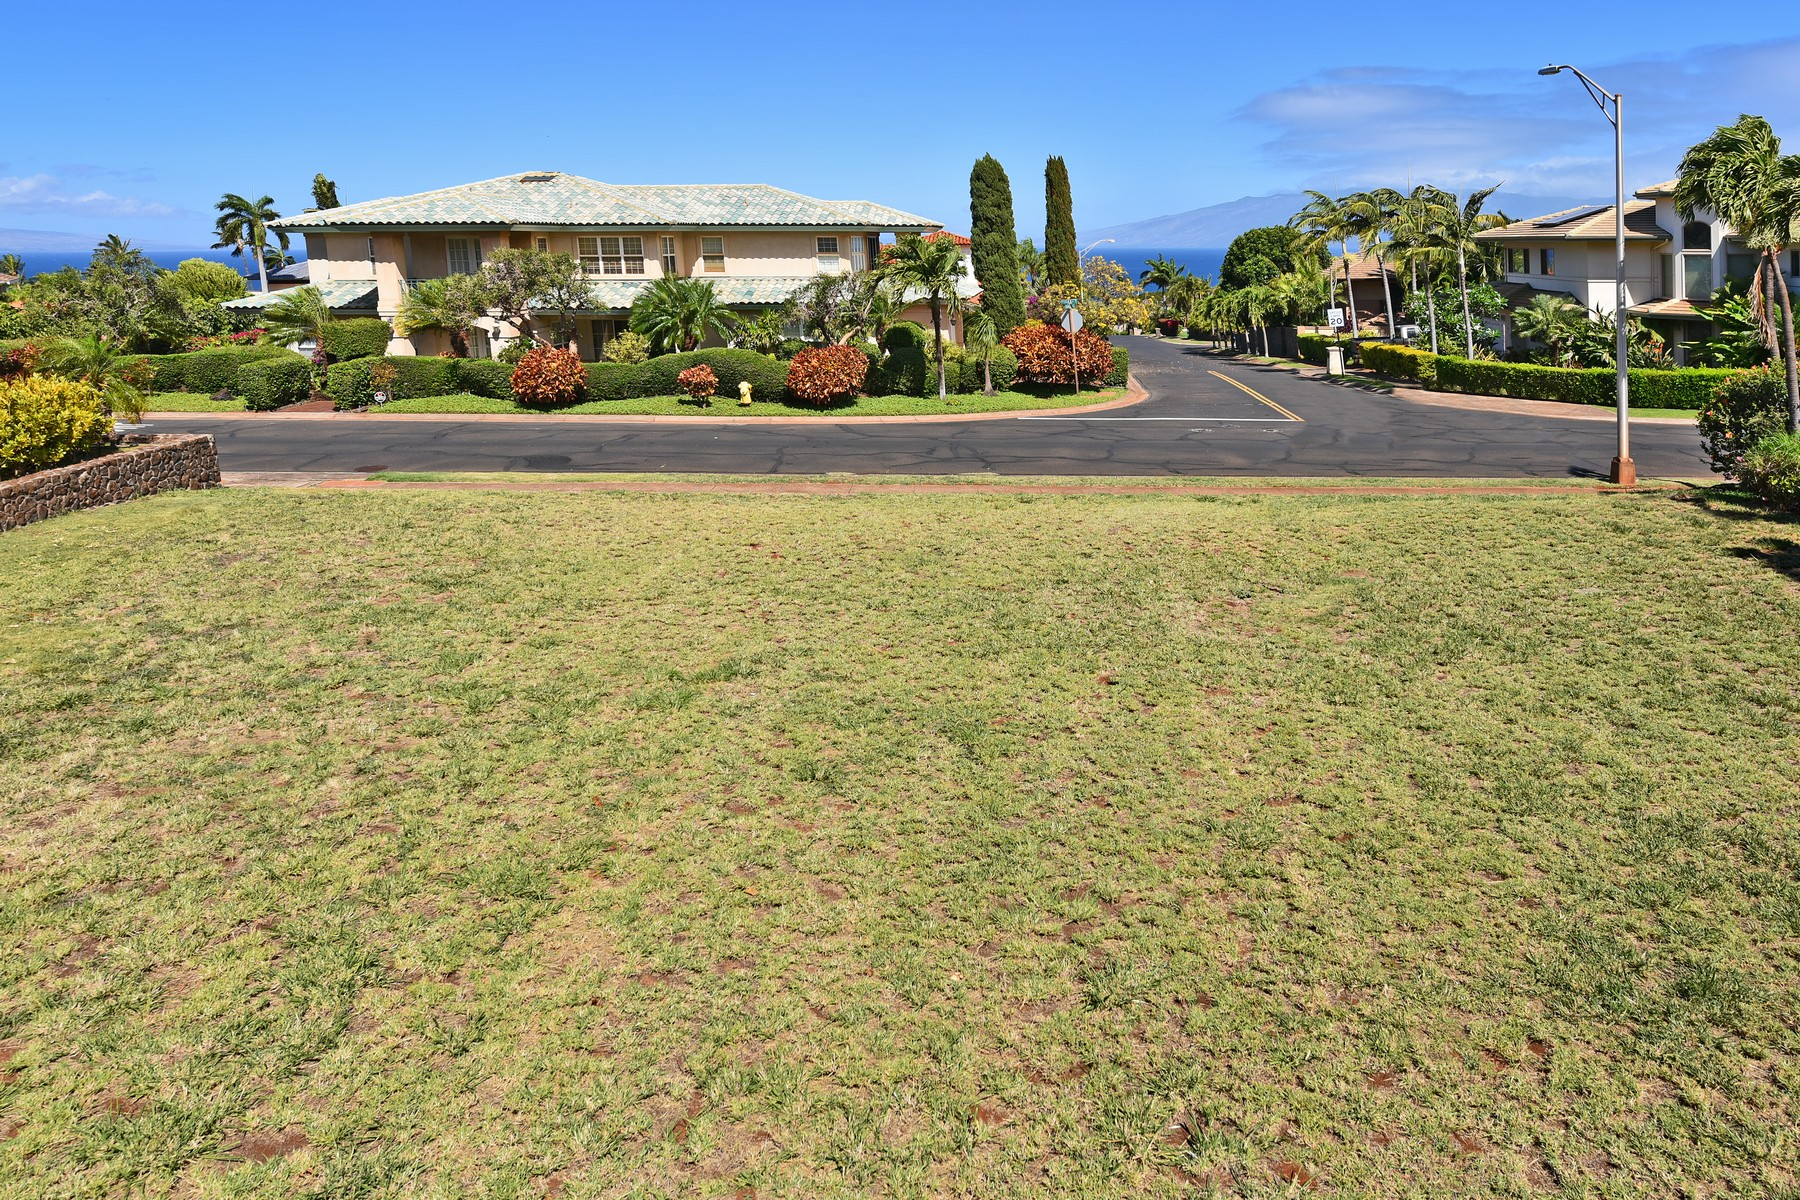 Land for Sale at Kaanapali Land with a View 51 Pihaa Street Kaanapali, Hawaii 96761 United States